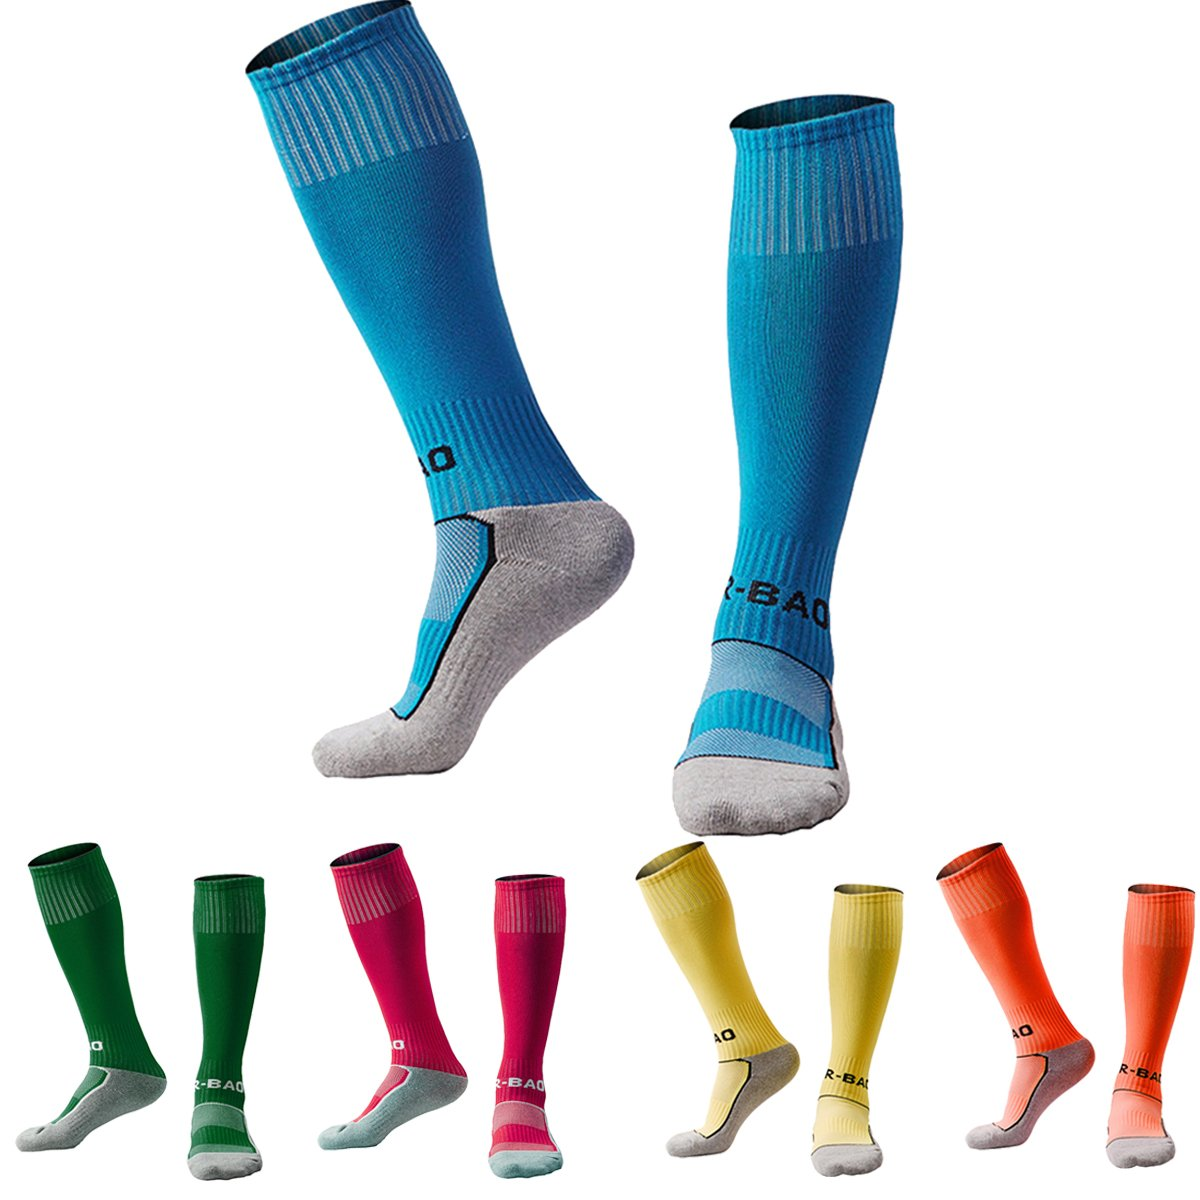 Soccer Socks for Kids 3 Pack / 5 Pack Knee High Cushioned Bottom Compression Football Socks (7-13 Years Boys or Girls)